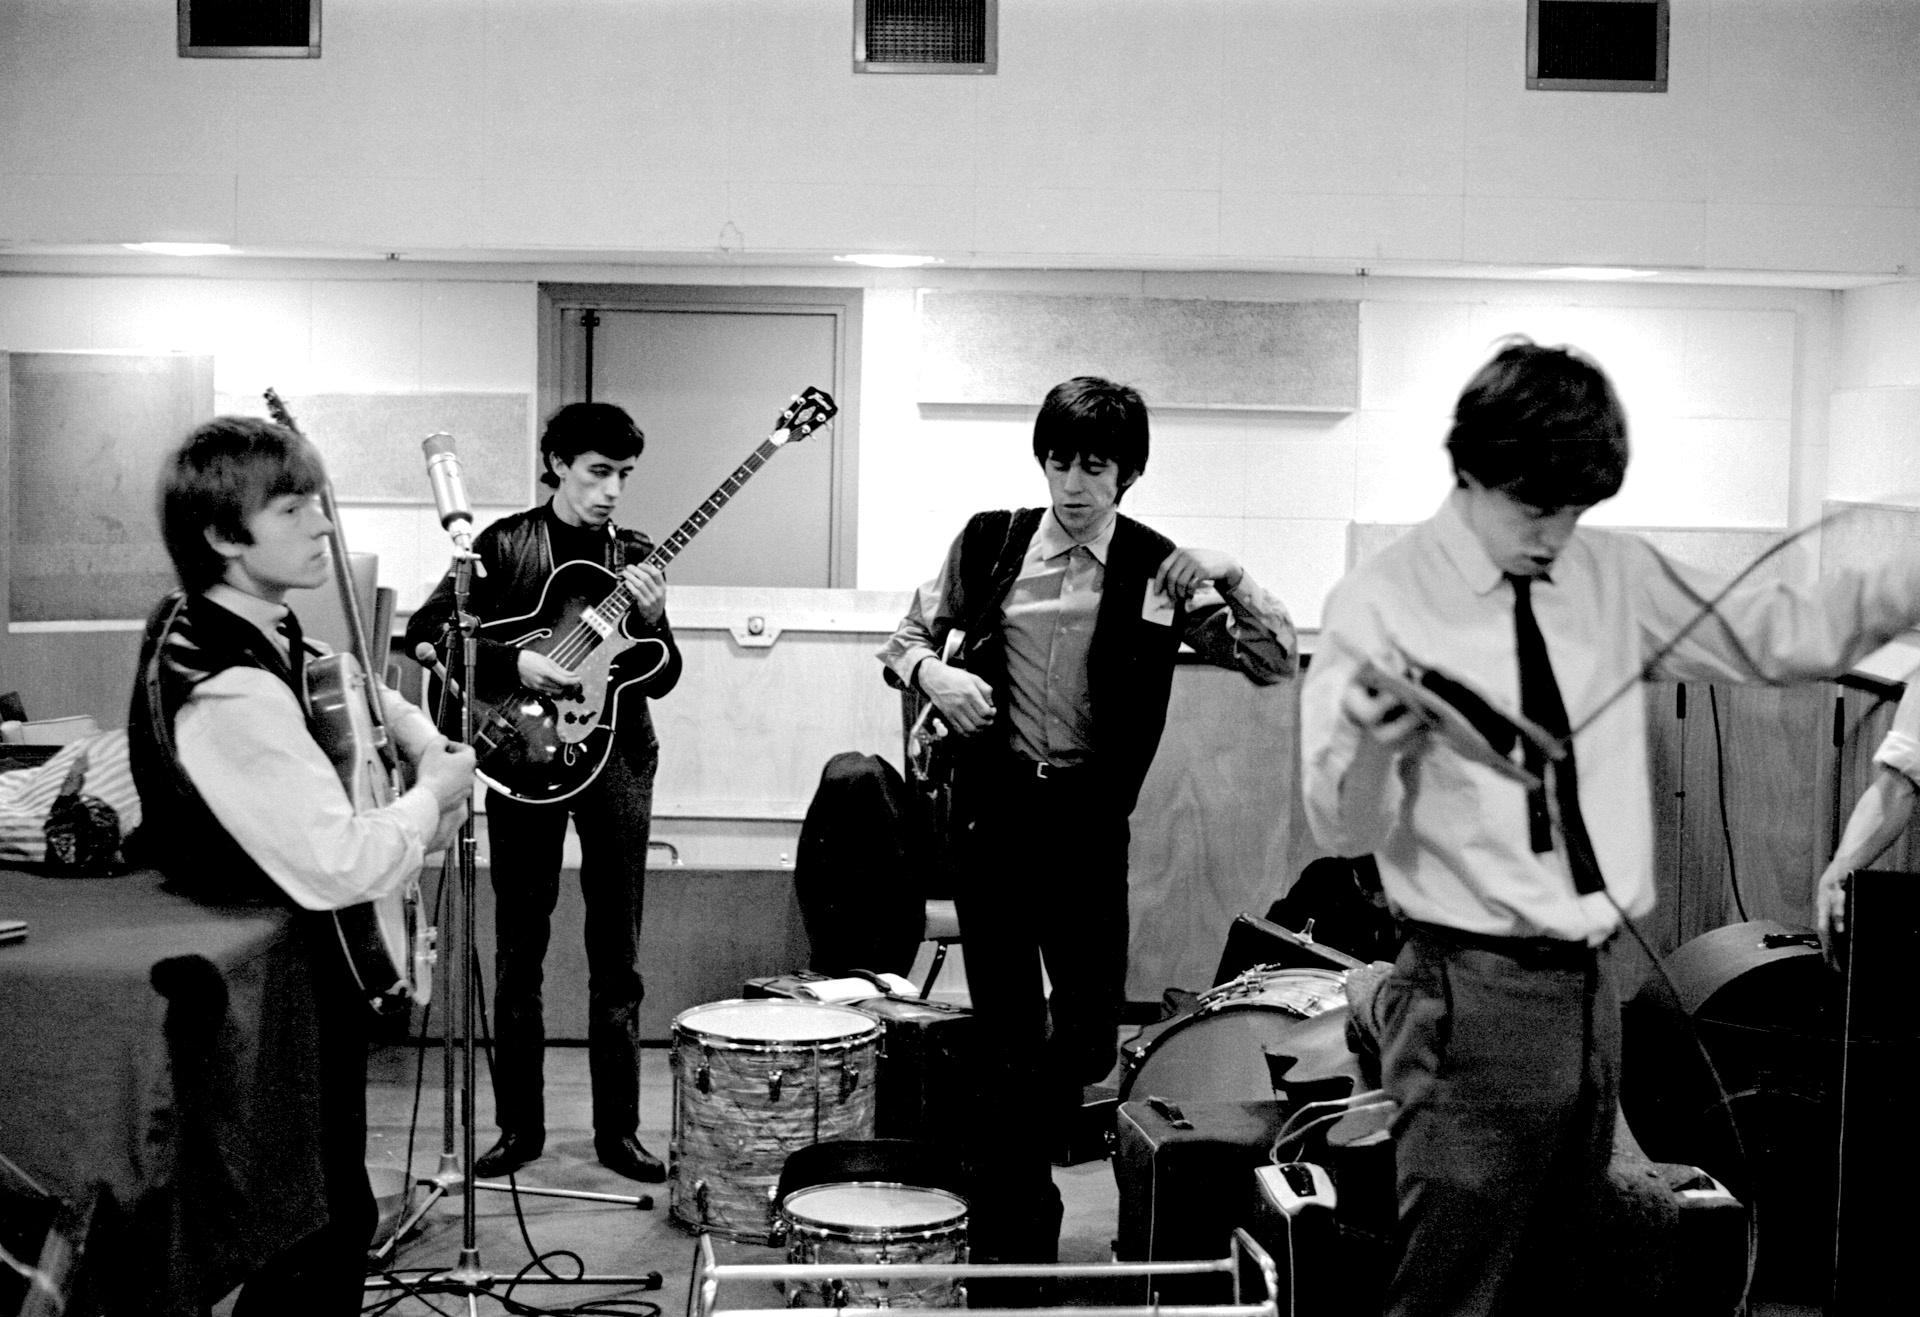 Rare photographs capture Rolling Stones' humble beginnings